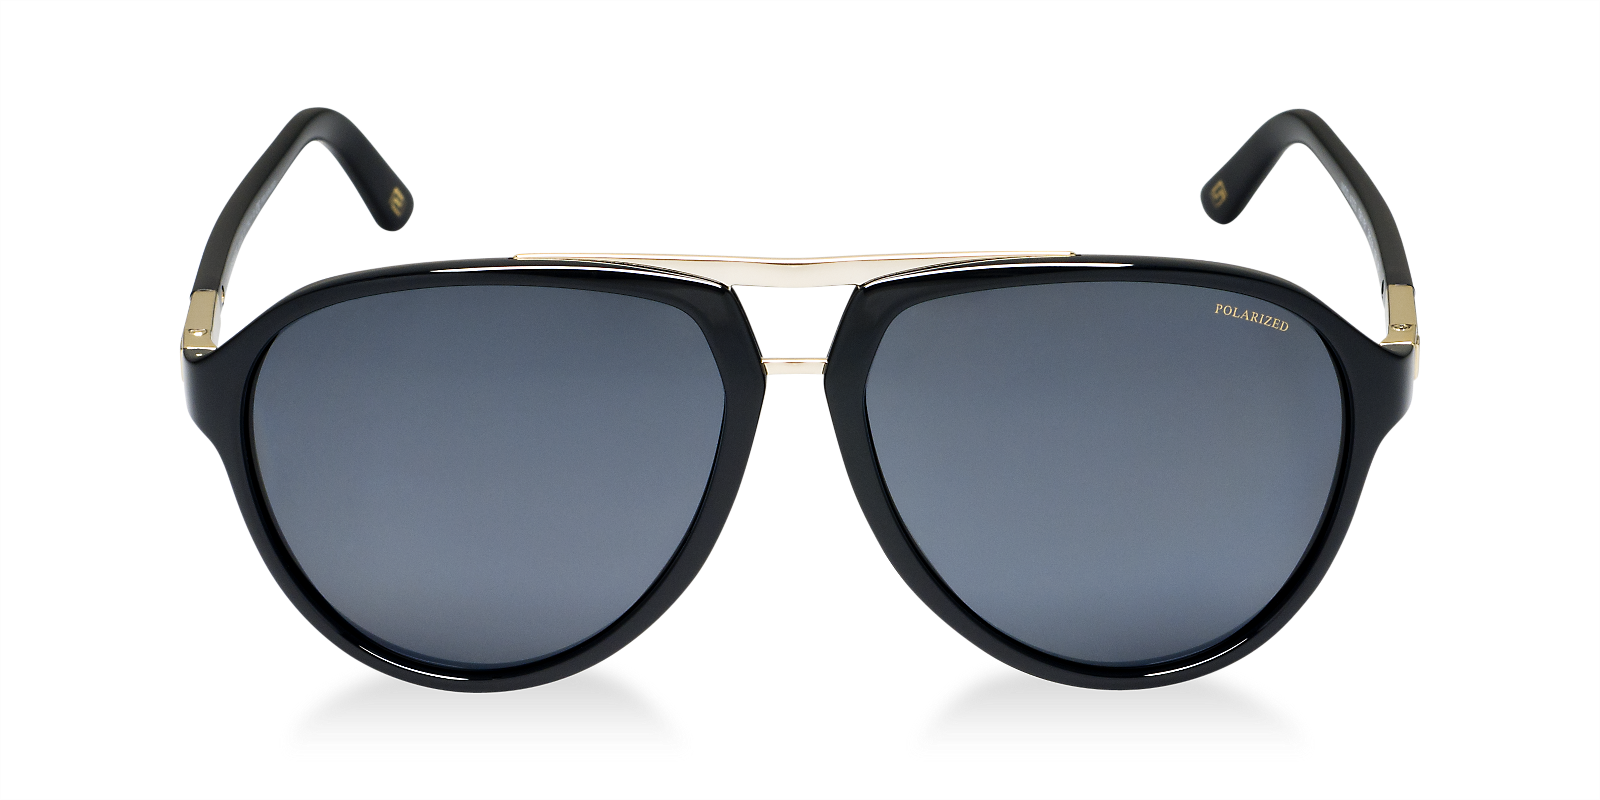 Sunglass png images free. Goggles transparent vector royalty free library